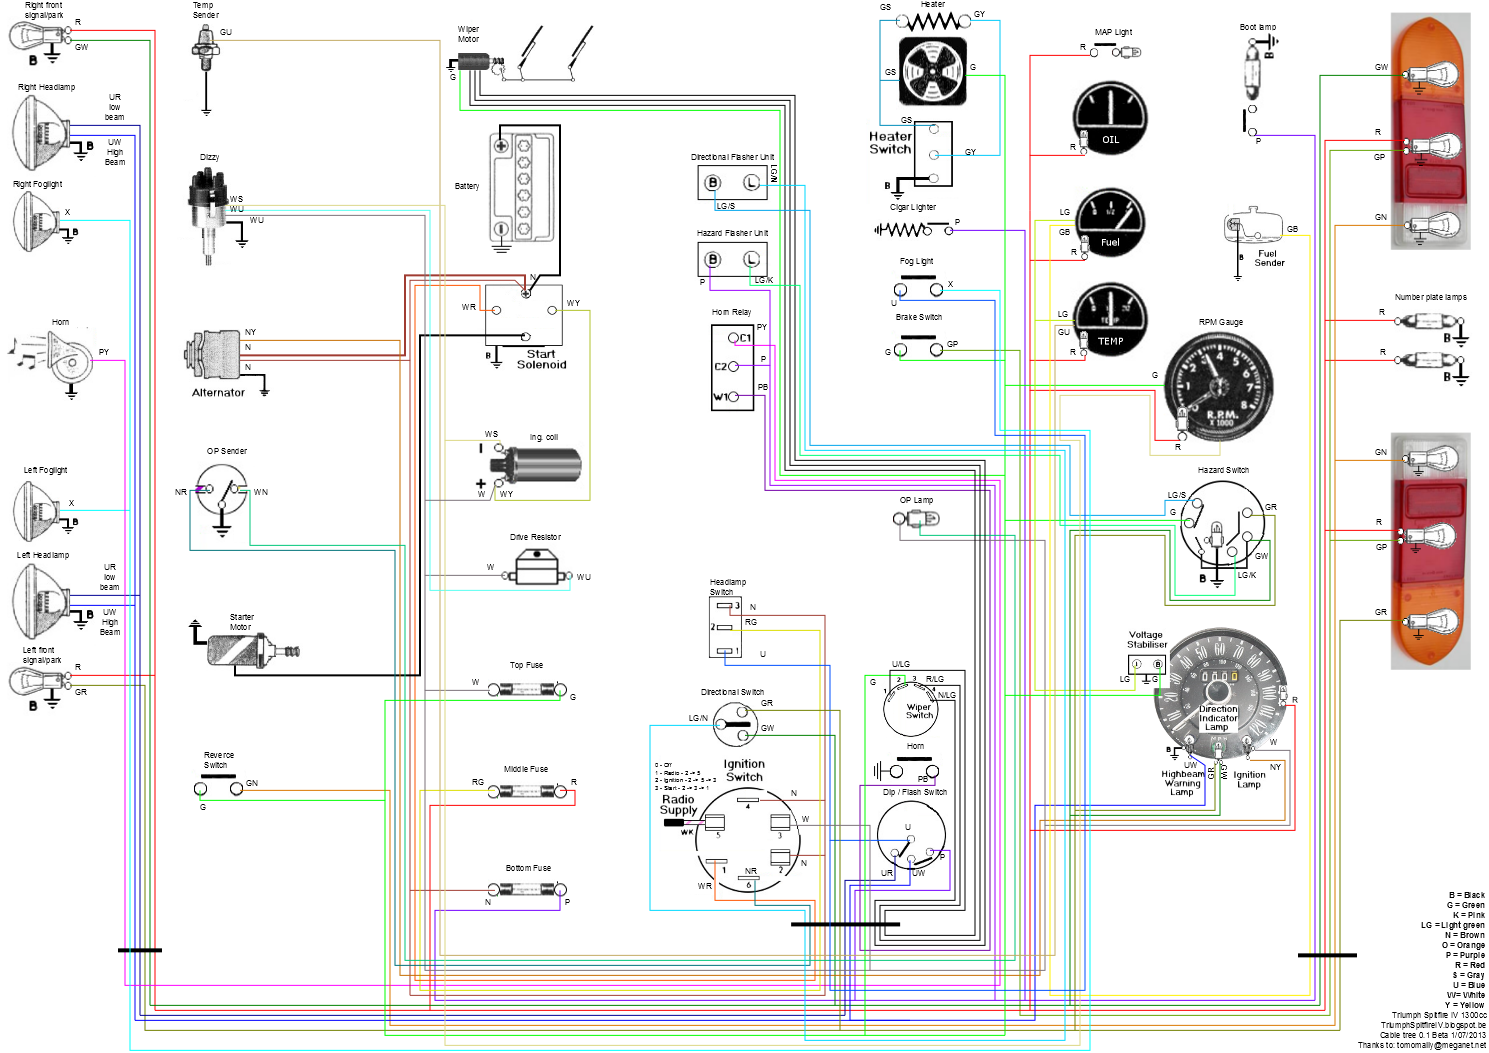 spitfire iv wiring diagram mk4 wiring diagram mk4 tdi wiring diagram \u2022 wiring diagrams j 2005 E55 AMG Performance Parts at cita.asia